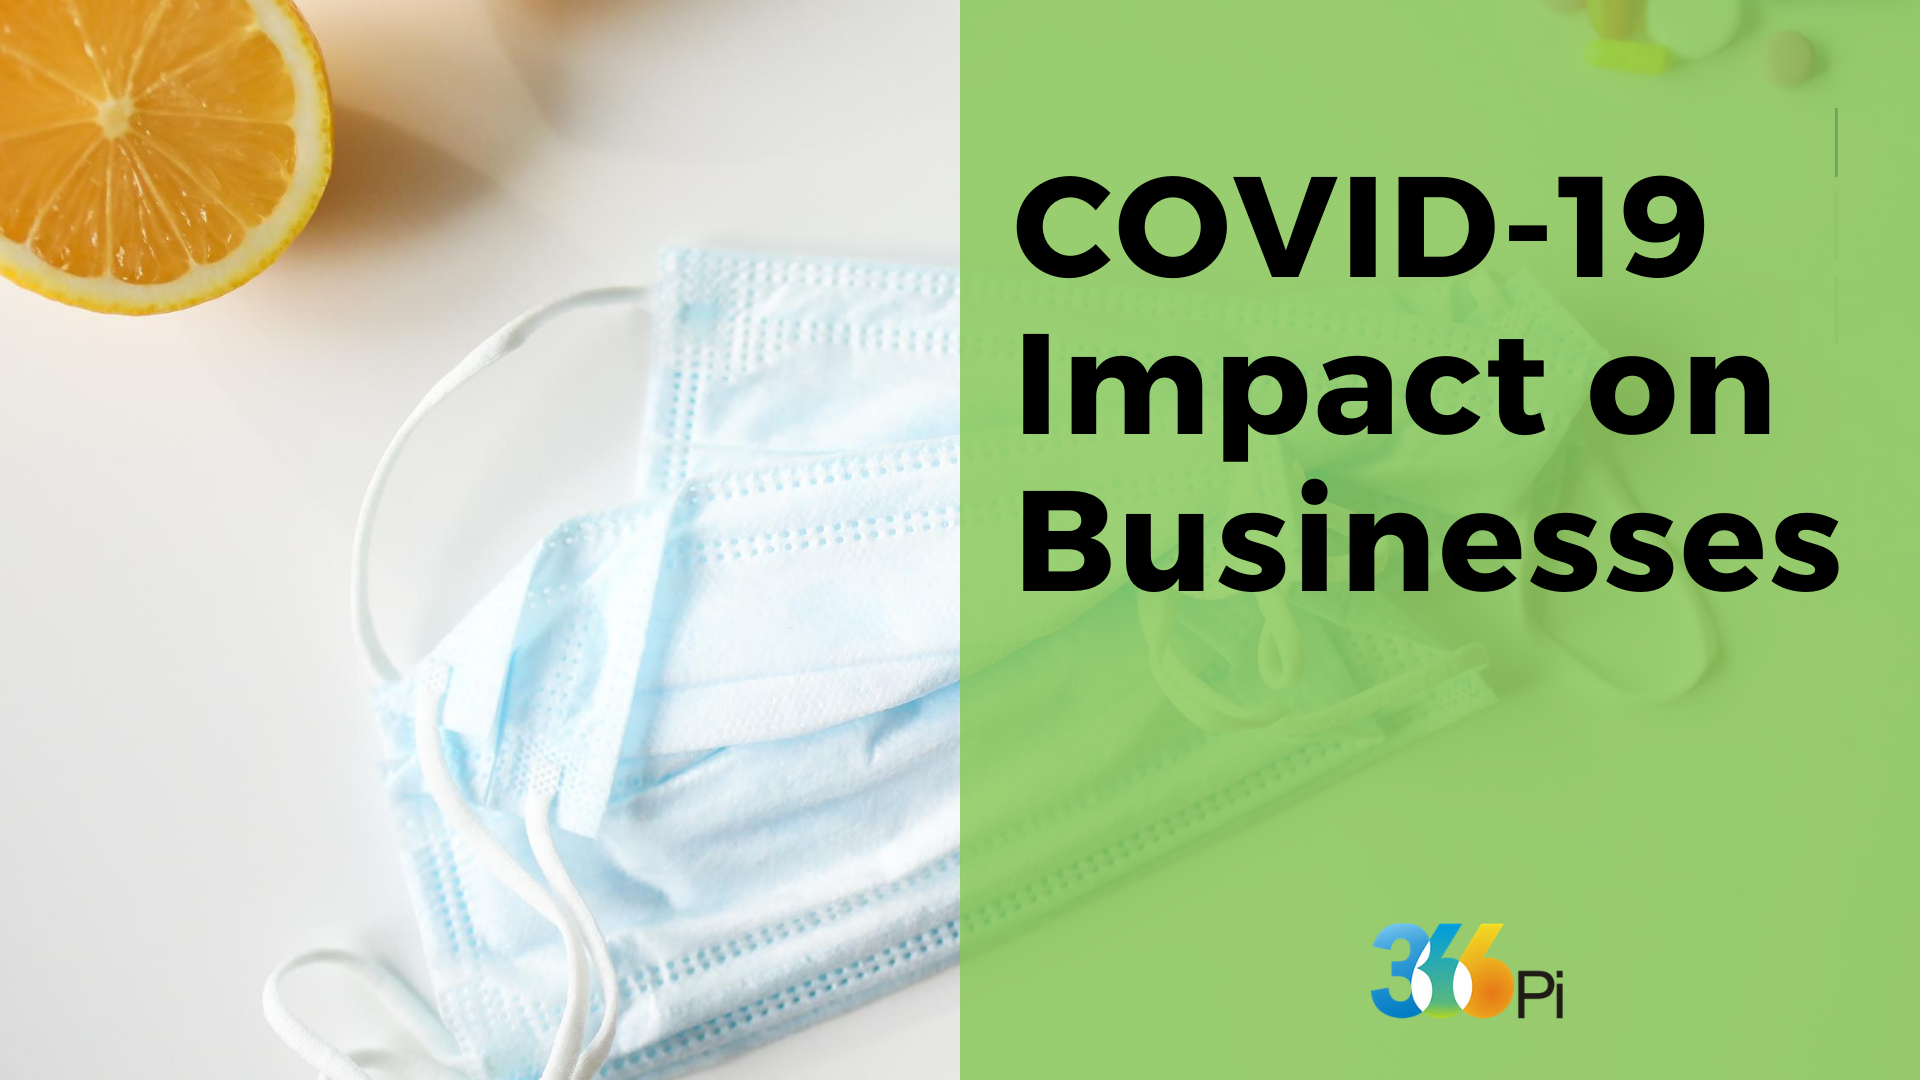 Covid-19 Impact on Businesses 366Pi